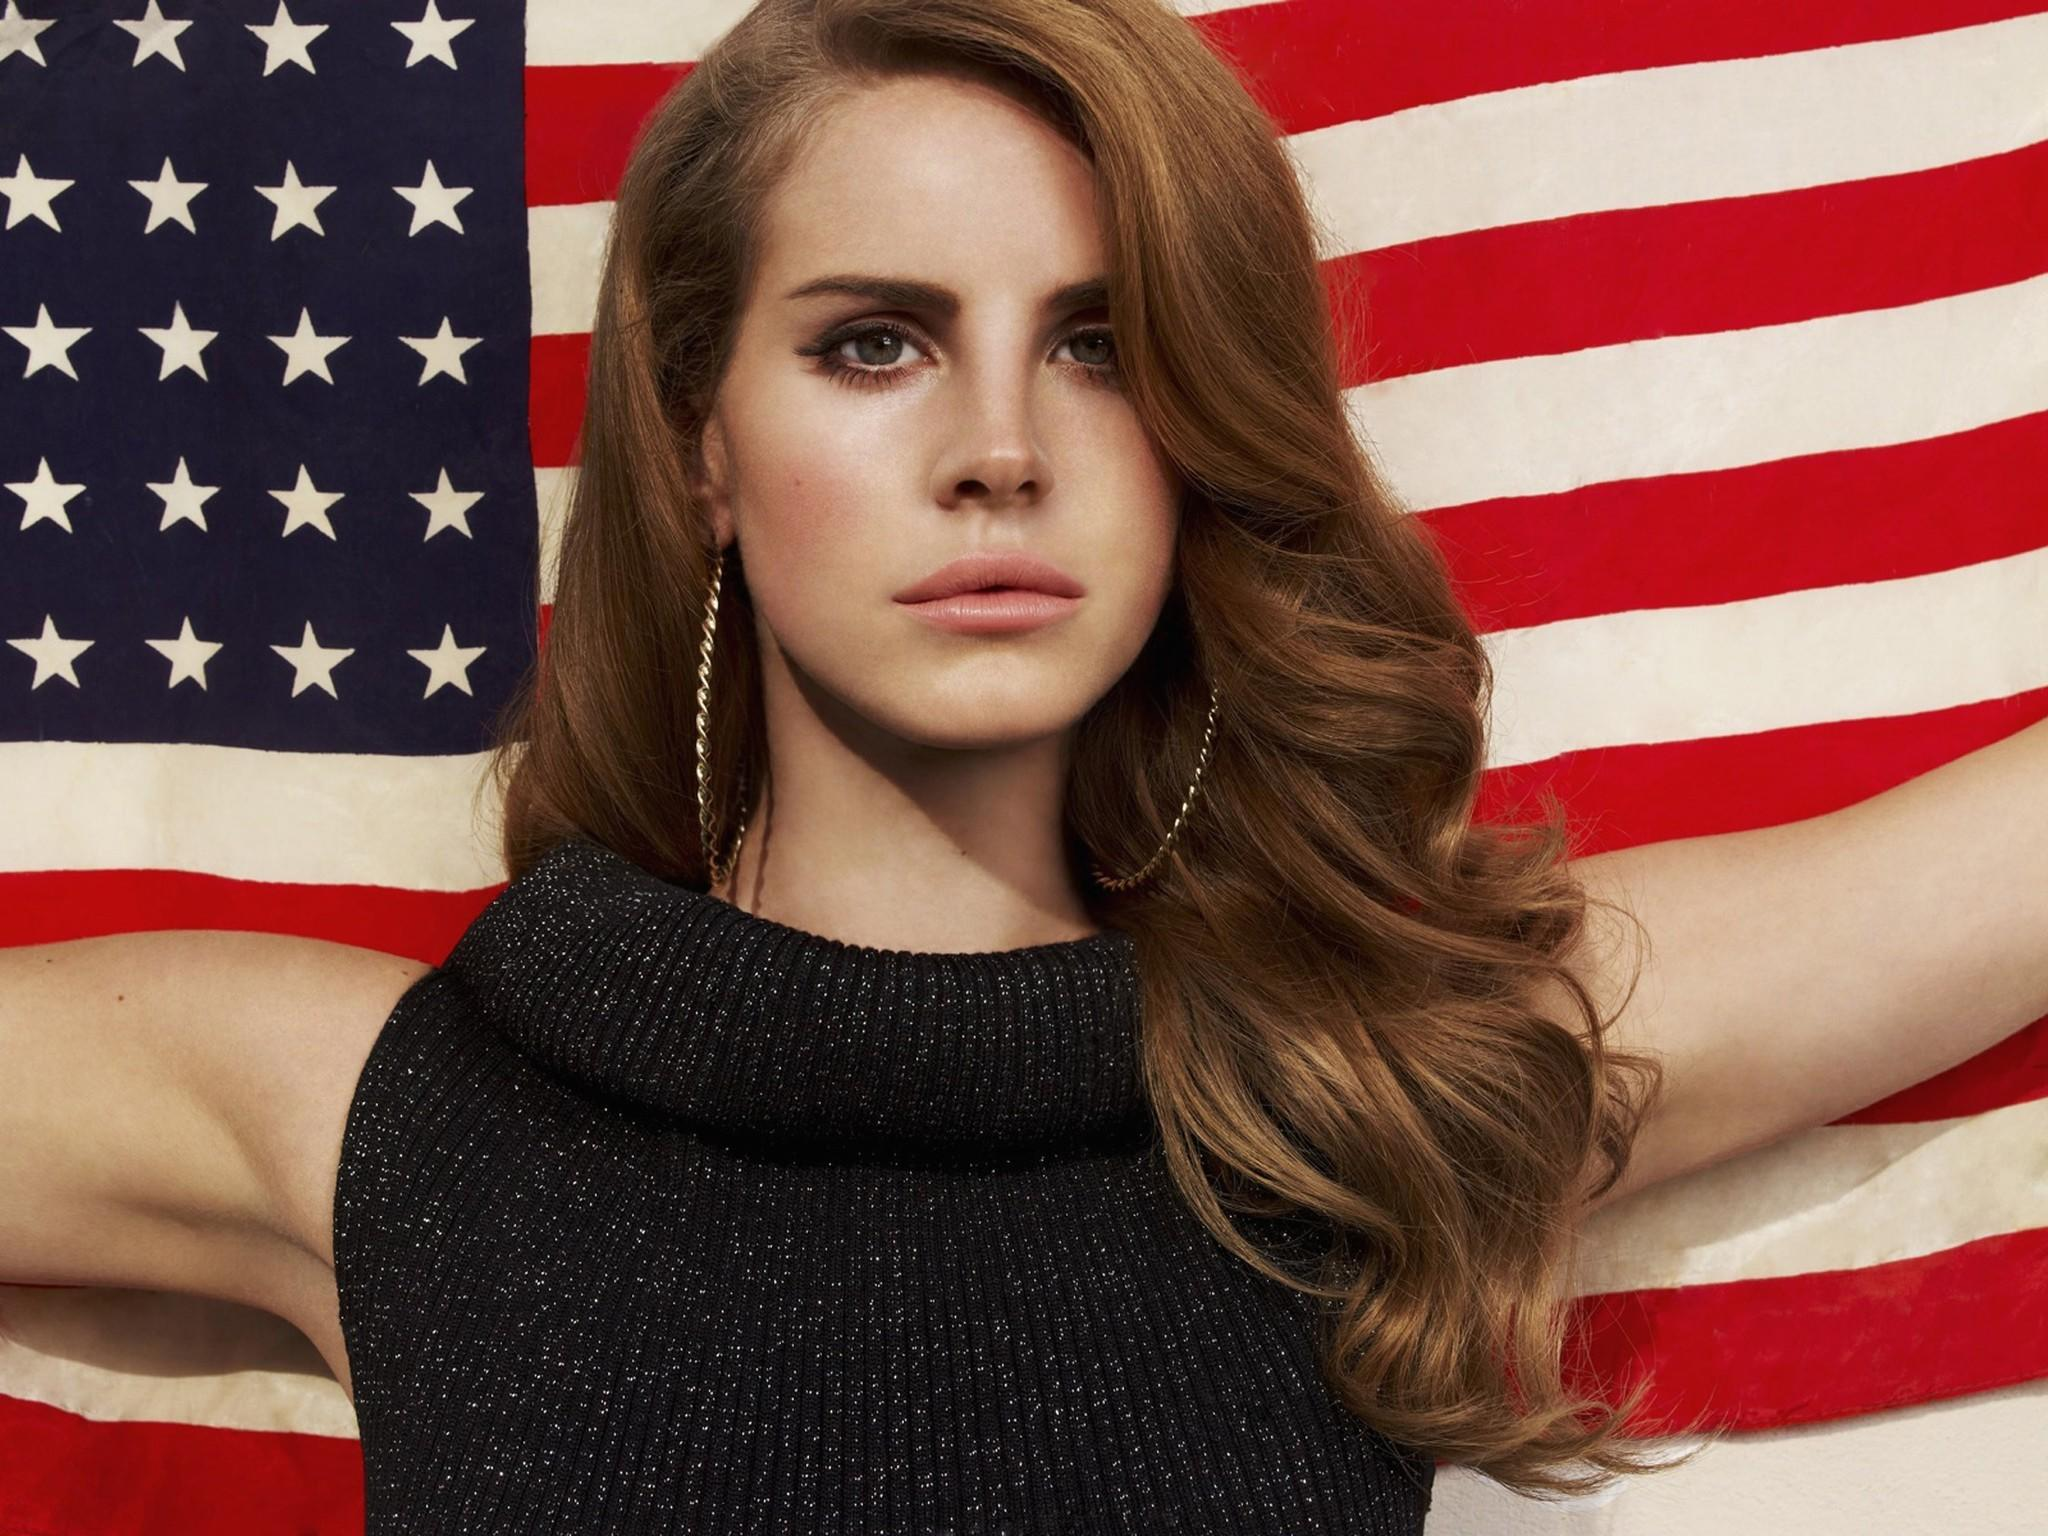 Singer Lana Del Rey will perform at the Sweetlife Music and Food Festival in May.